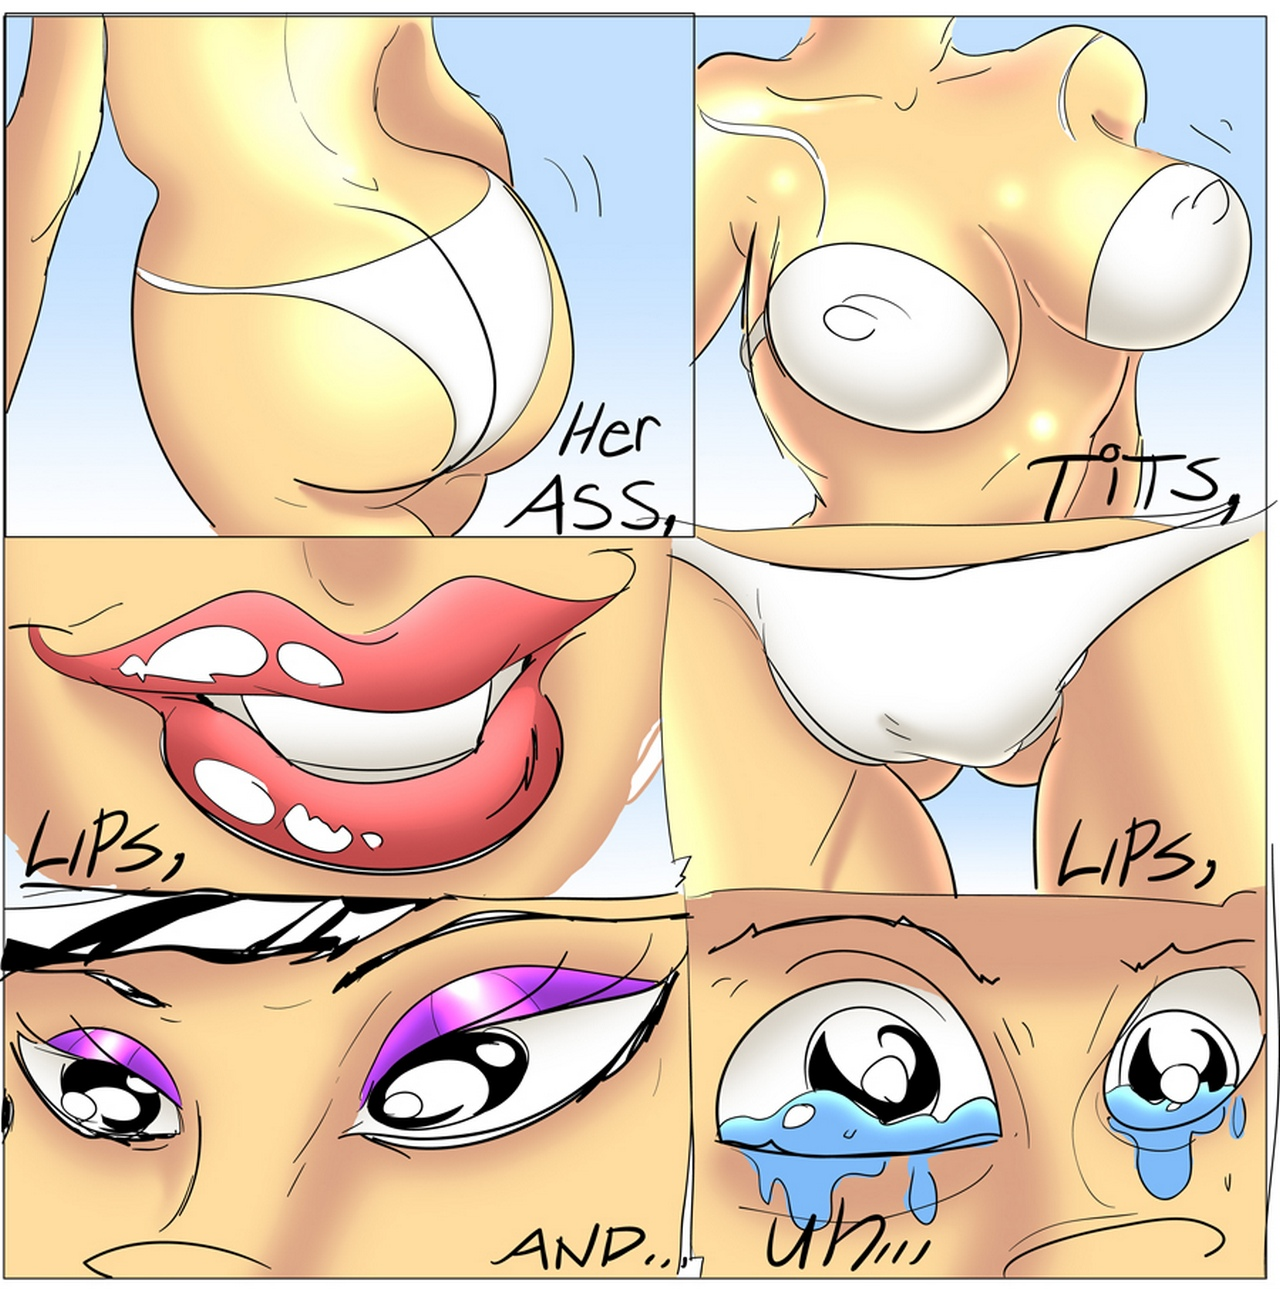 The-Millionaire-s-Daughter-1 6 free sex comic